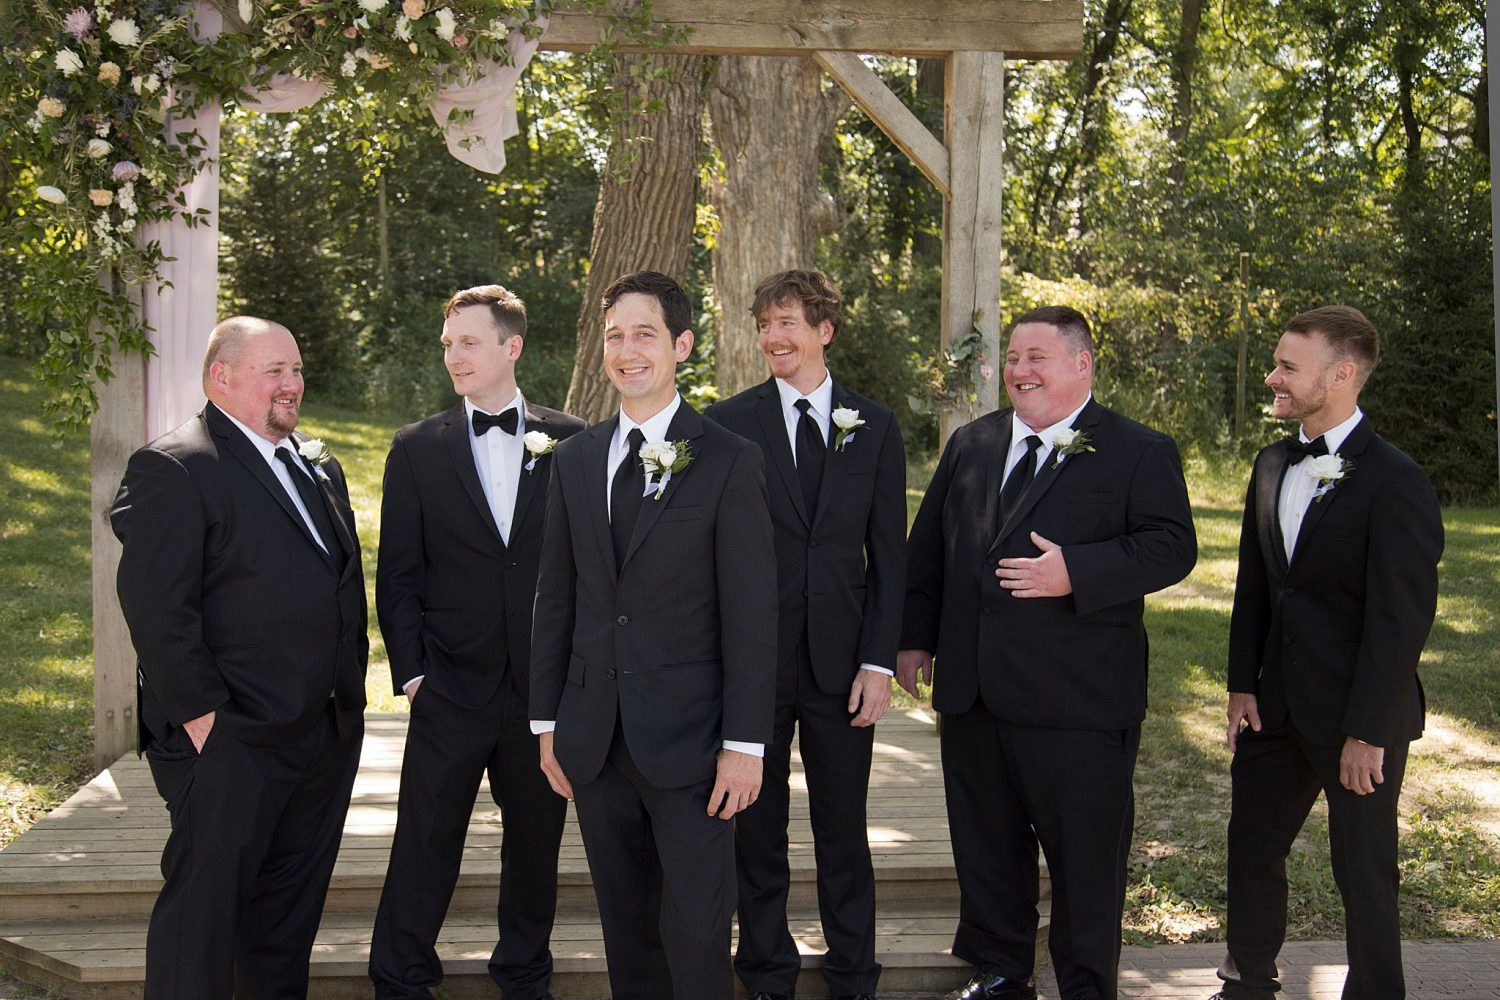 Groom poses with his laughing groomsmen at the outdoor ceremony location of Rapid Creek Cidery.